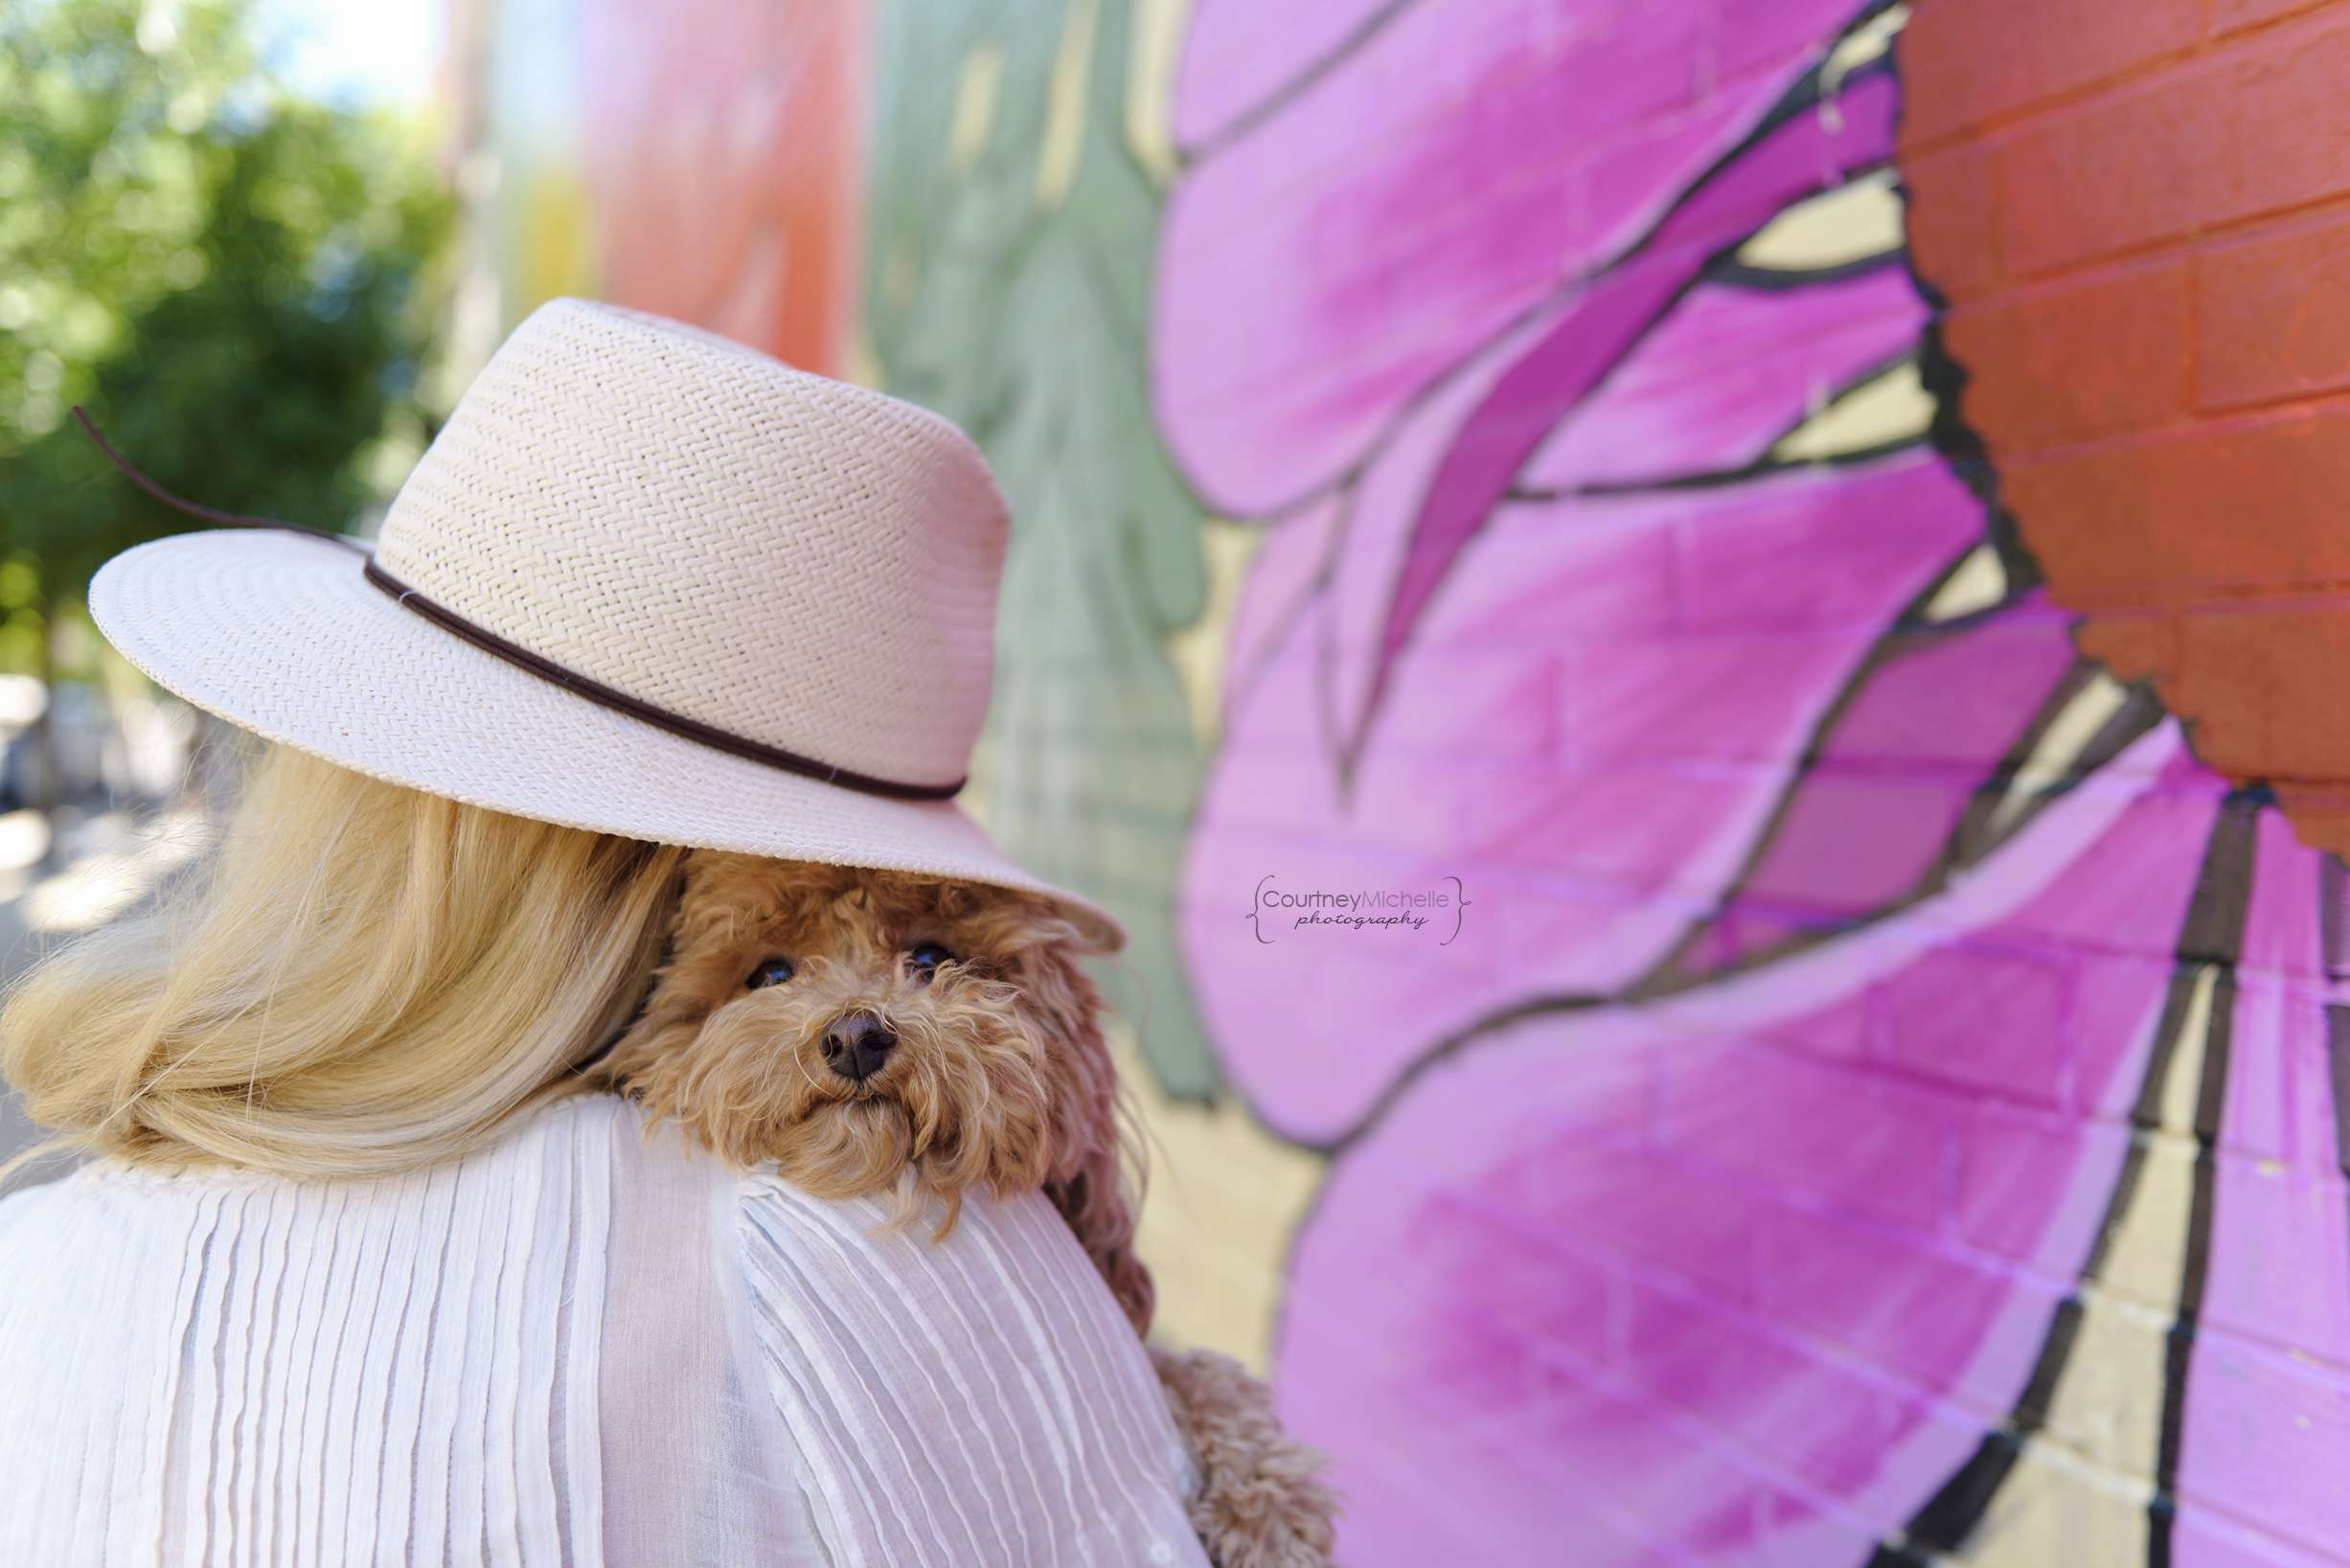 chicago-pet-photographers-courtney-laper-teacup-doodle-southport-avenue-COPYRIGHTCMP_Diogi-2019-07-12-3768-69.jpg